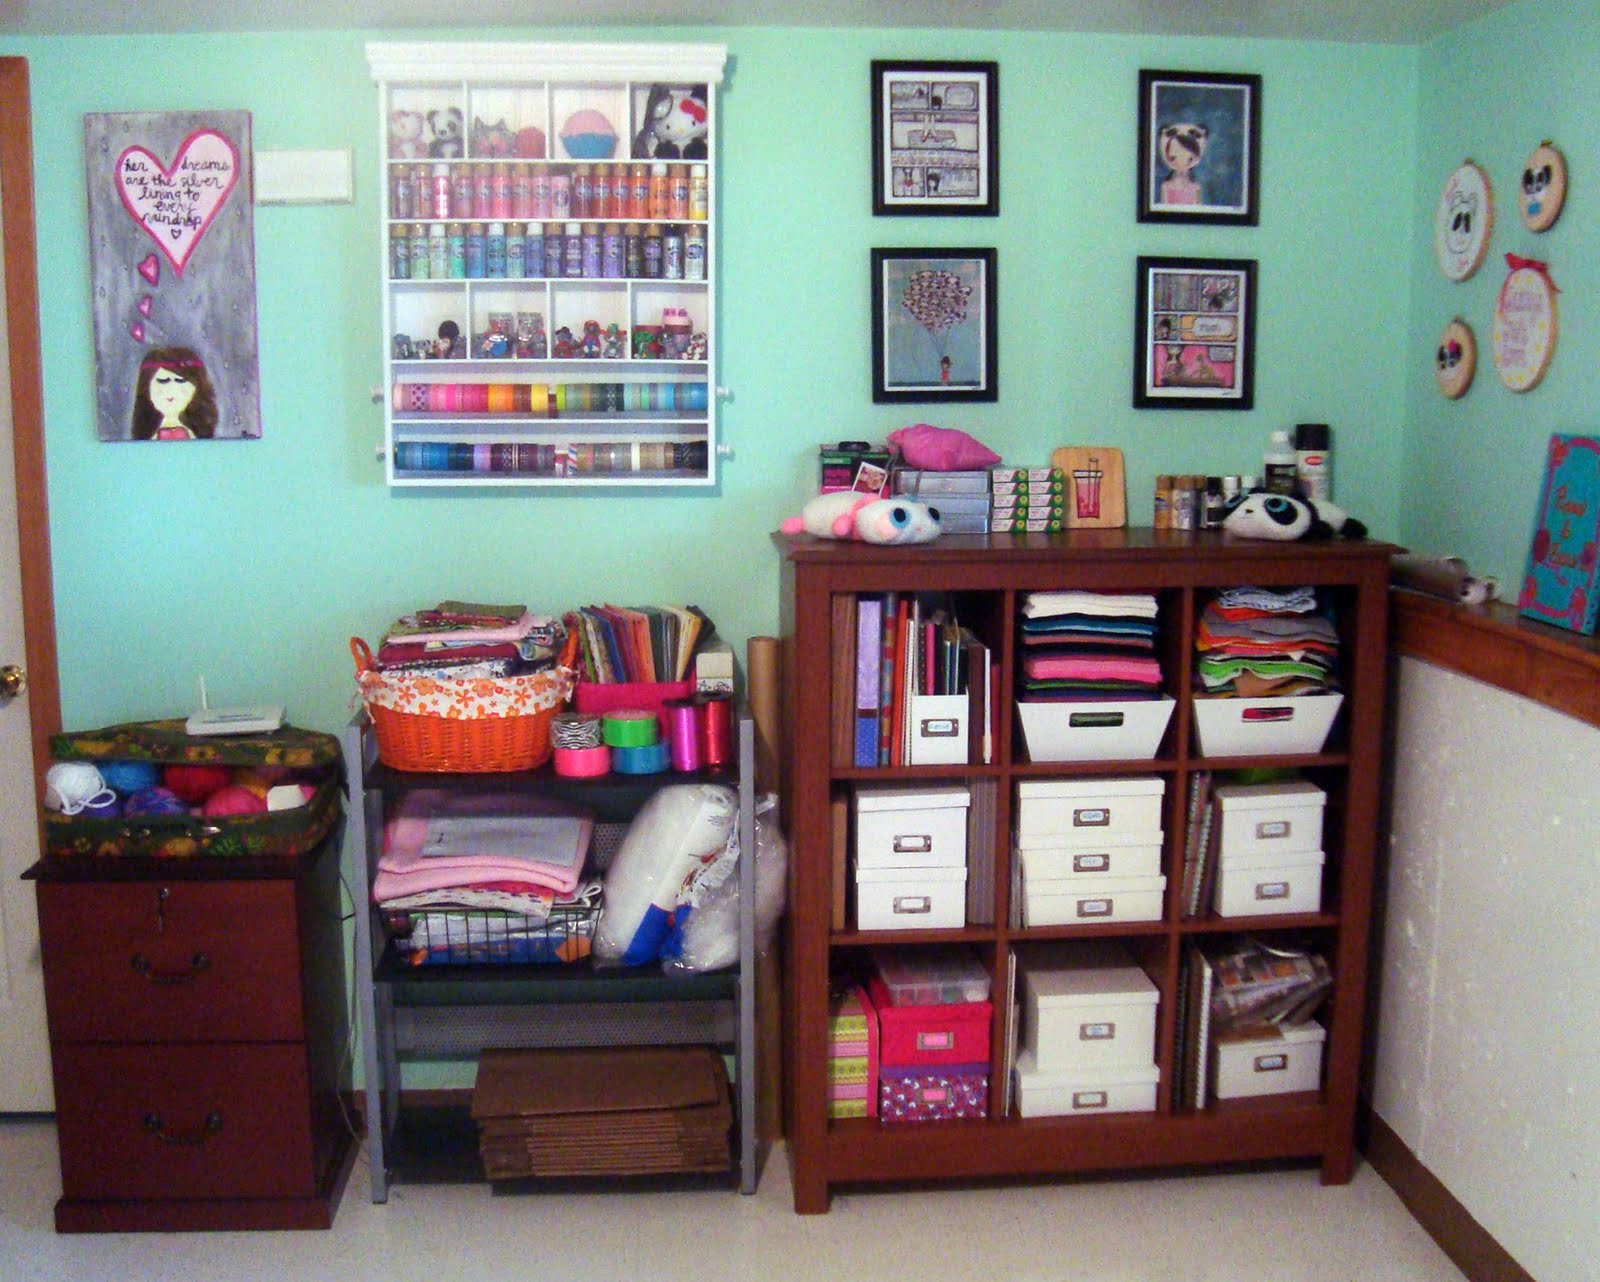 How to organize a room with too much stuff